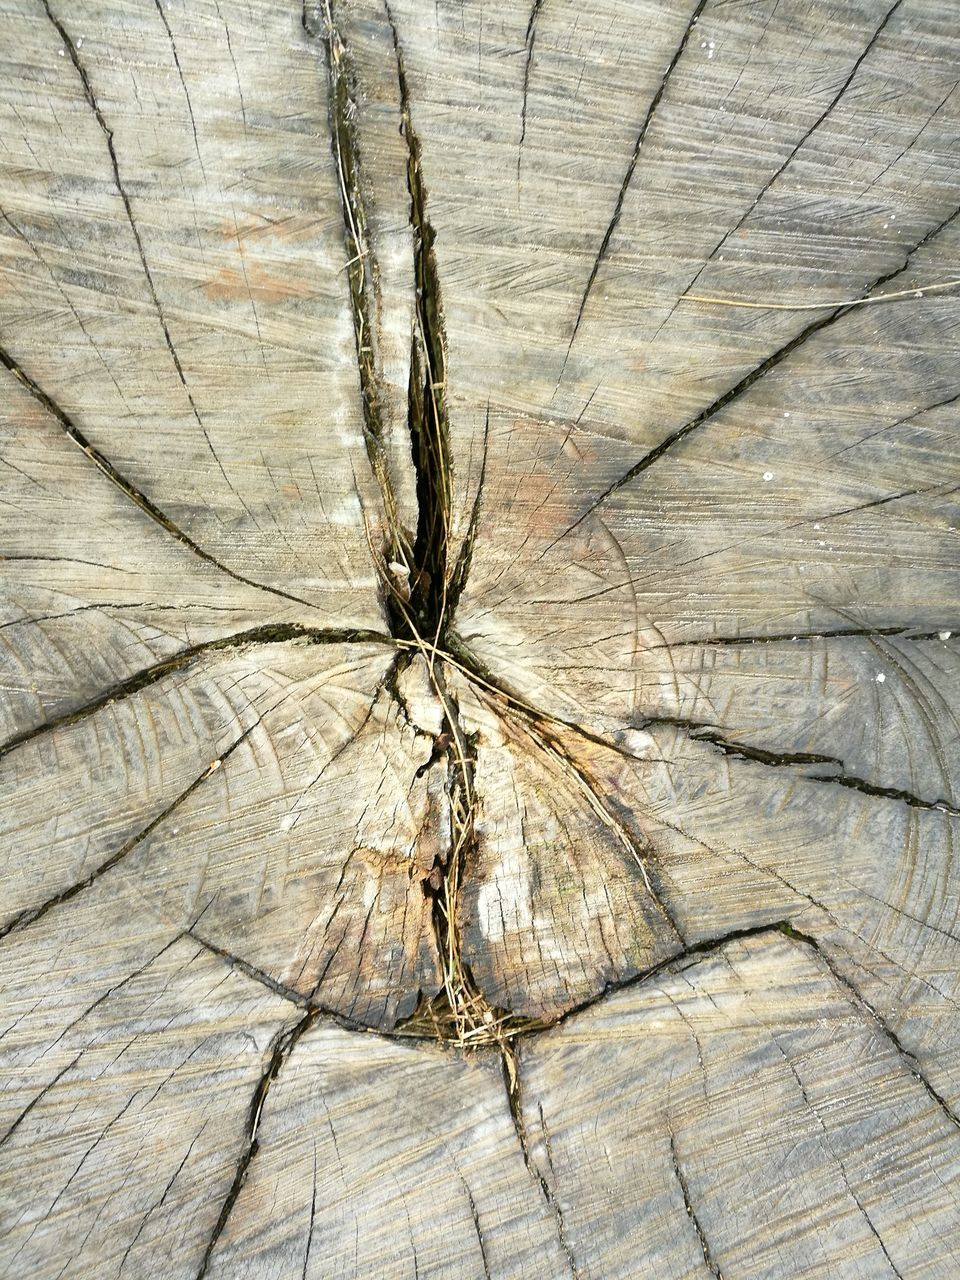 cracked, full frame, wood - material, no people, textured, tree ring, close-up, nature, backgrounds, tree, day, outdoors, plant, concentric